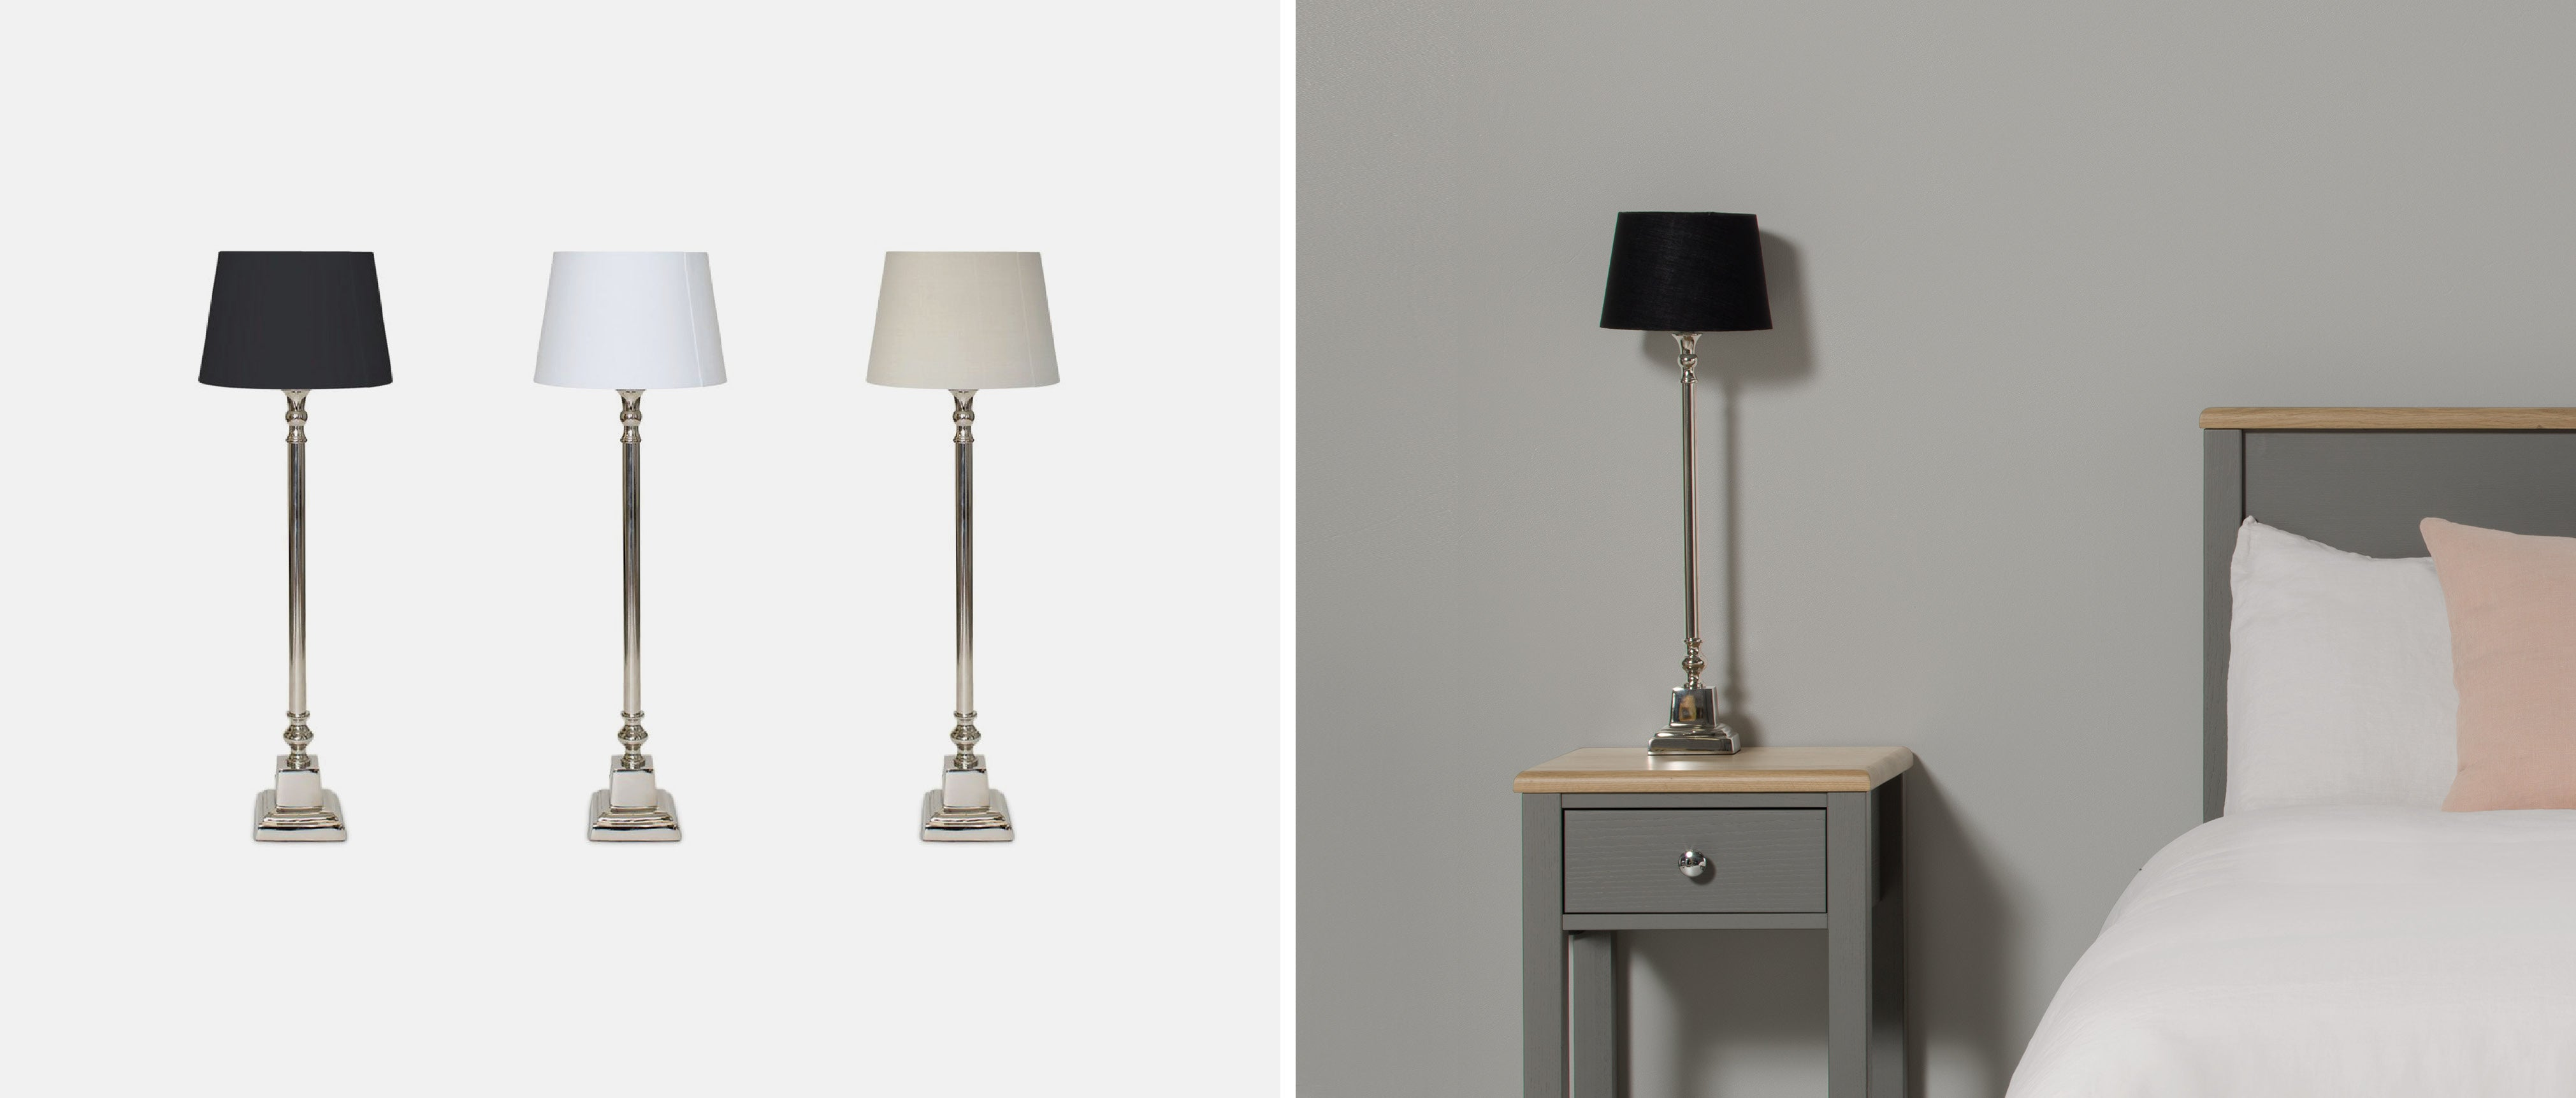 nickel table lamp for a bedside table